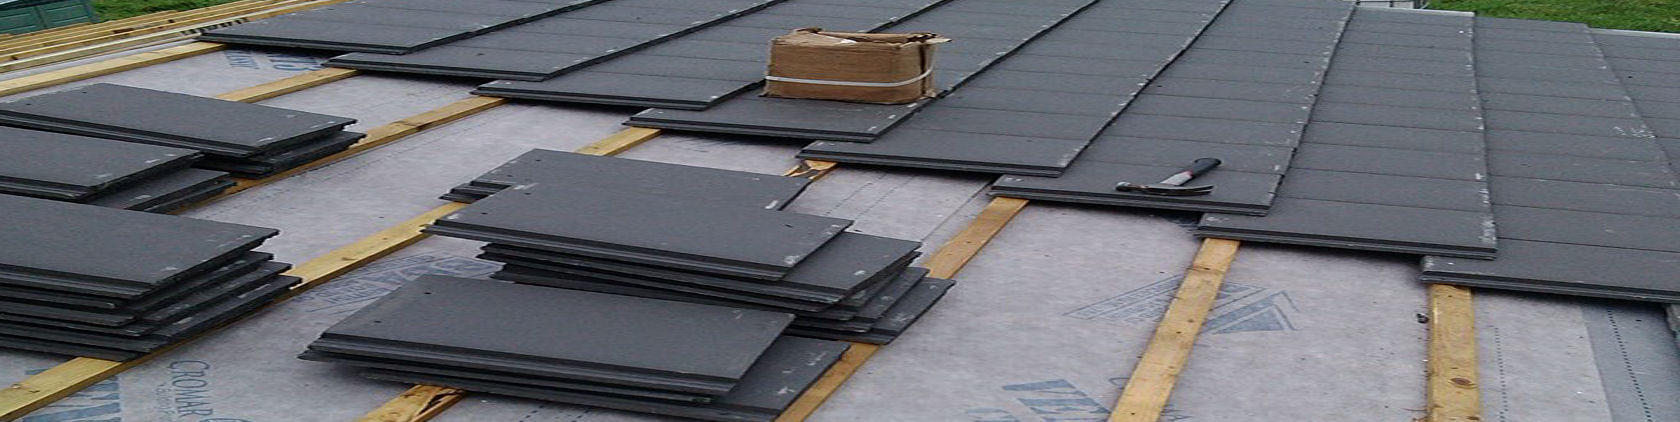 roof tiling & Roof Repairs and Cladding Installation Flintshire Deeside ... memphite.com